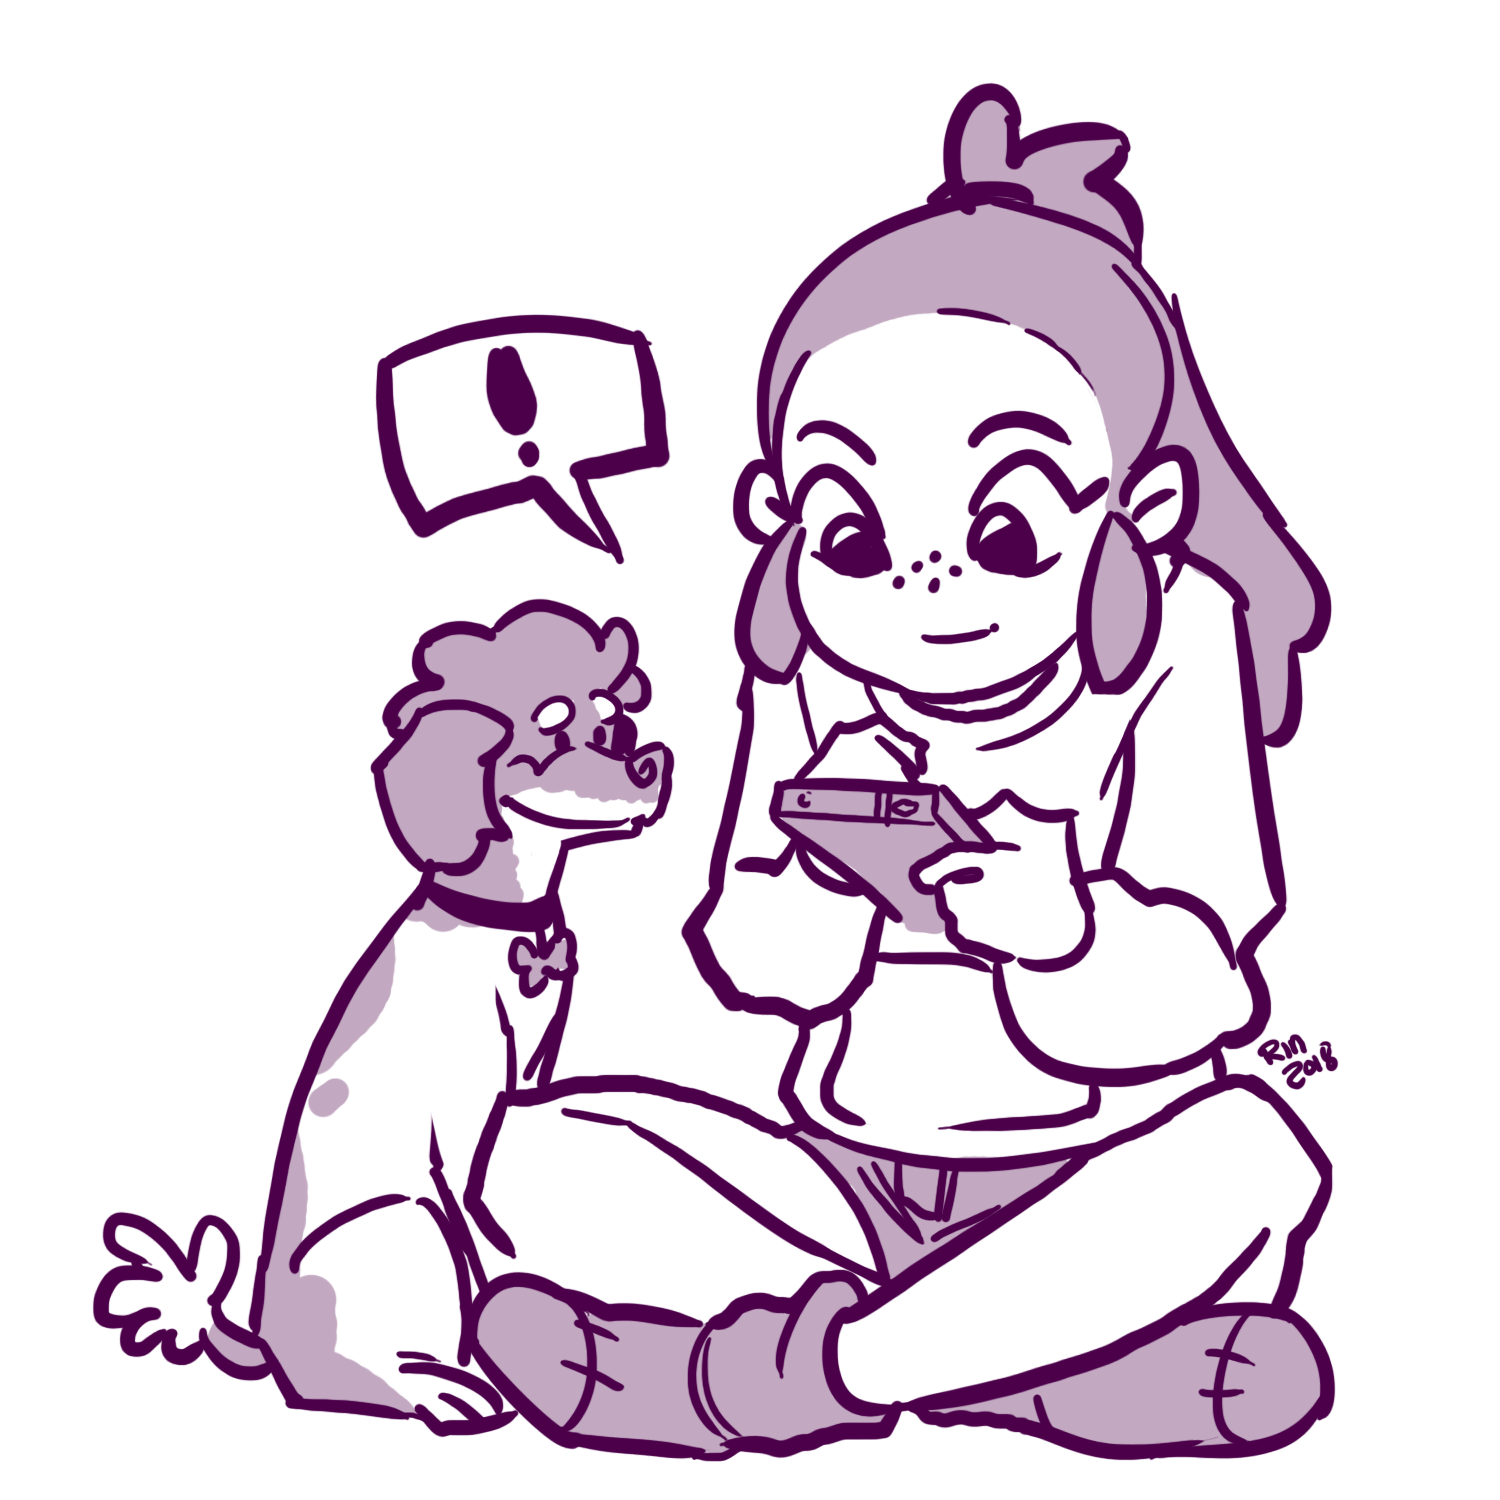 Social Links - Rin using a phone with her dog.